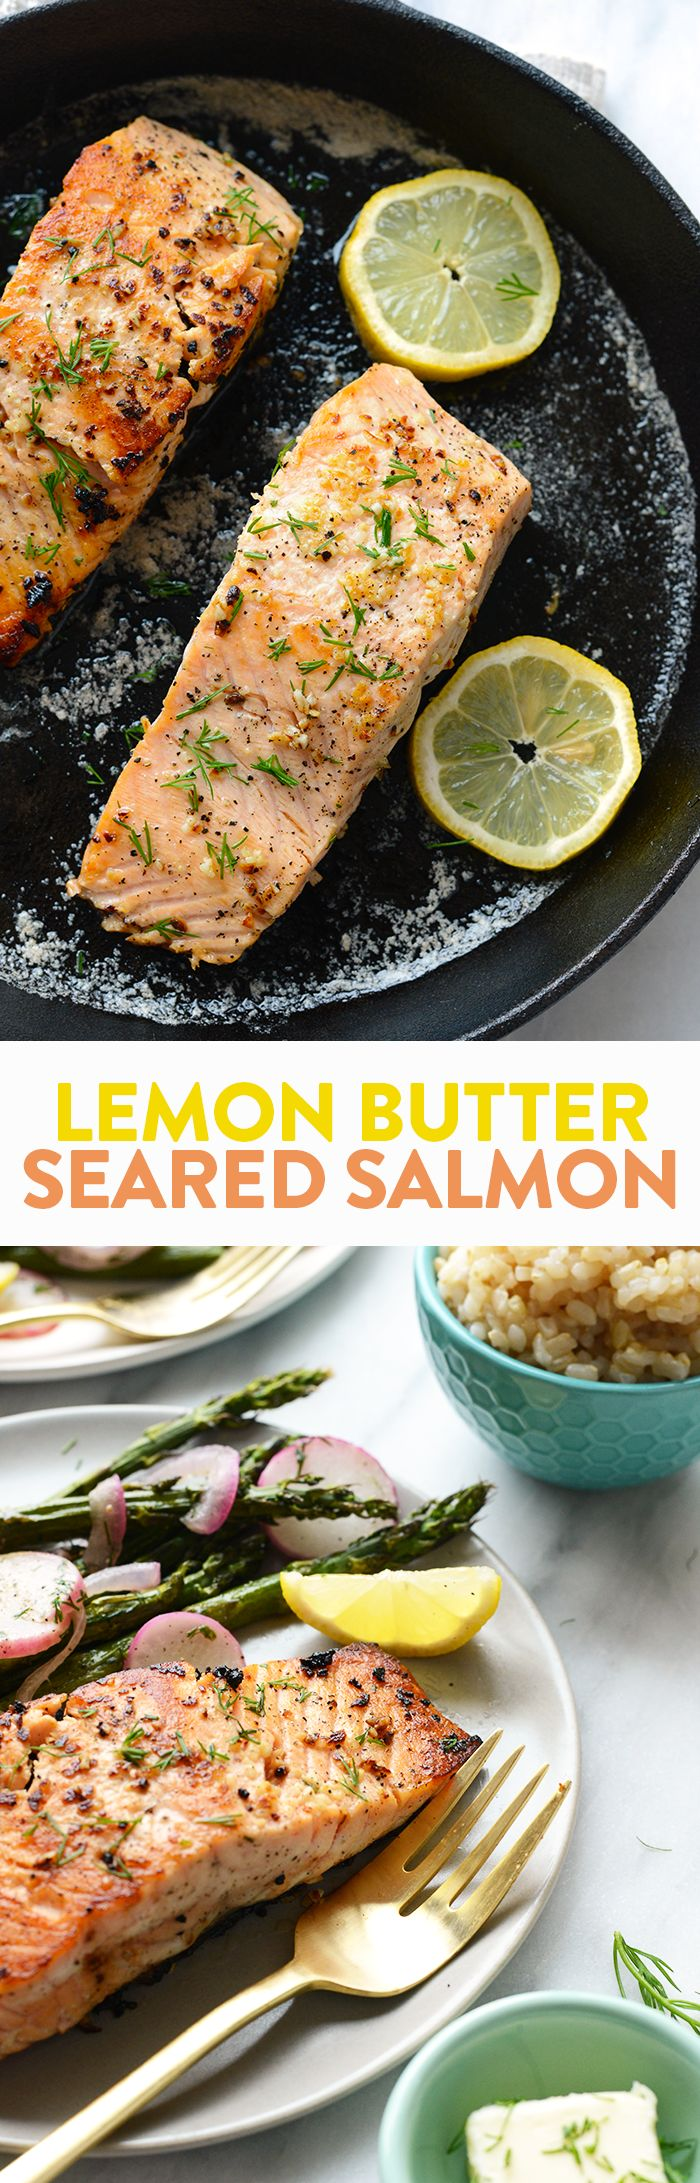 All you need is 5 ingredients and 20 minutes and this Lemon Butter Seared Salmon will be ready for dinner!